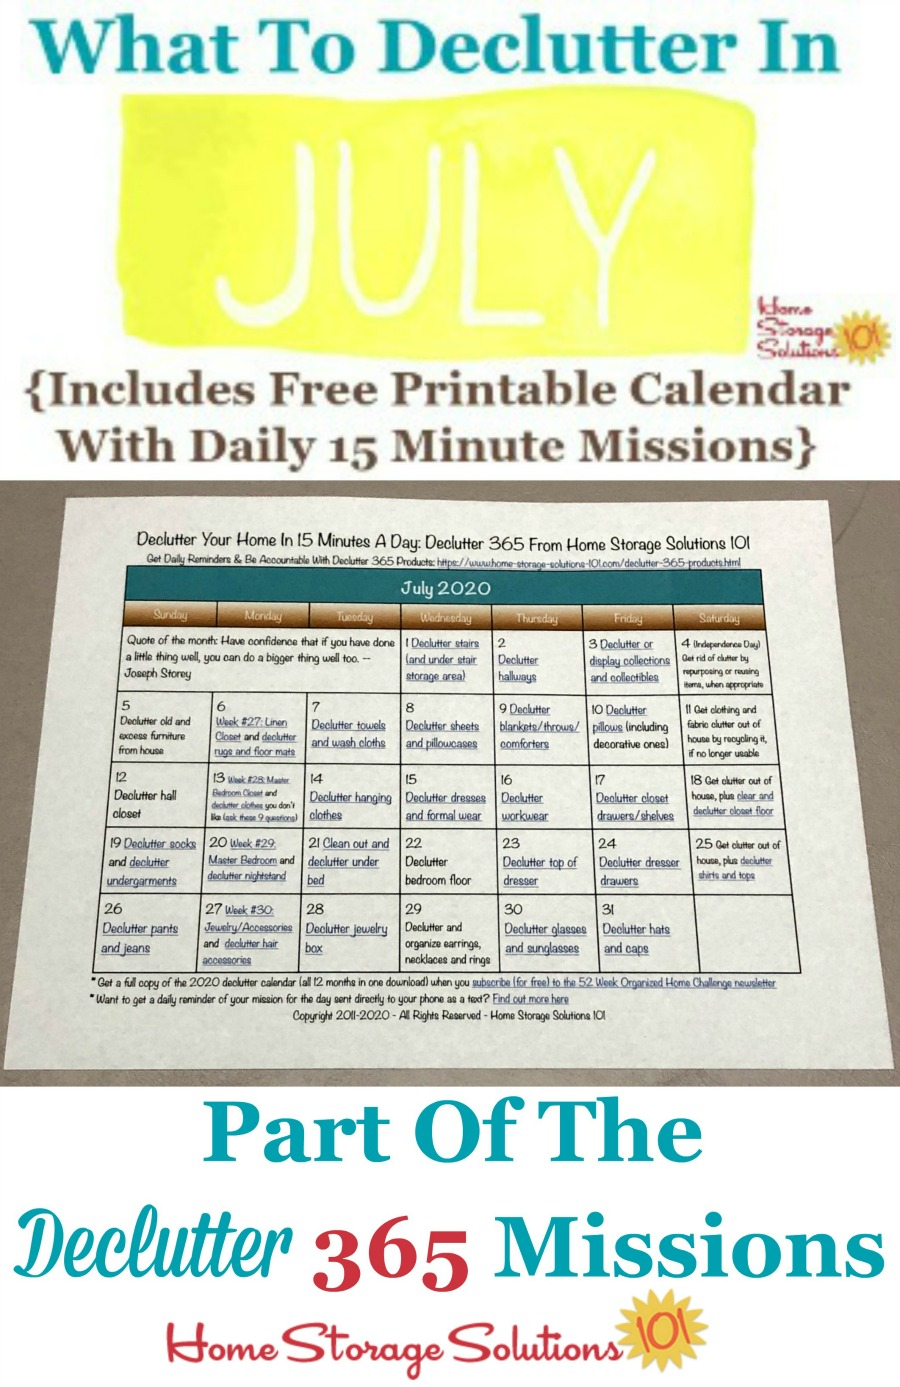 What to declutter in July 2020, including a free printable July decluttering calendar you can follow each day {on Home Storage Solutions 101} #Declutter365 #Decluttering #Declutter